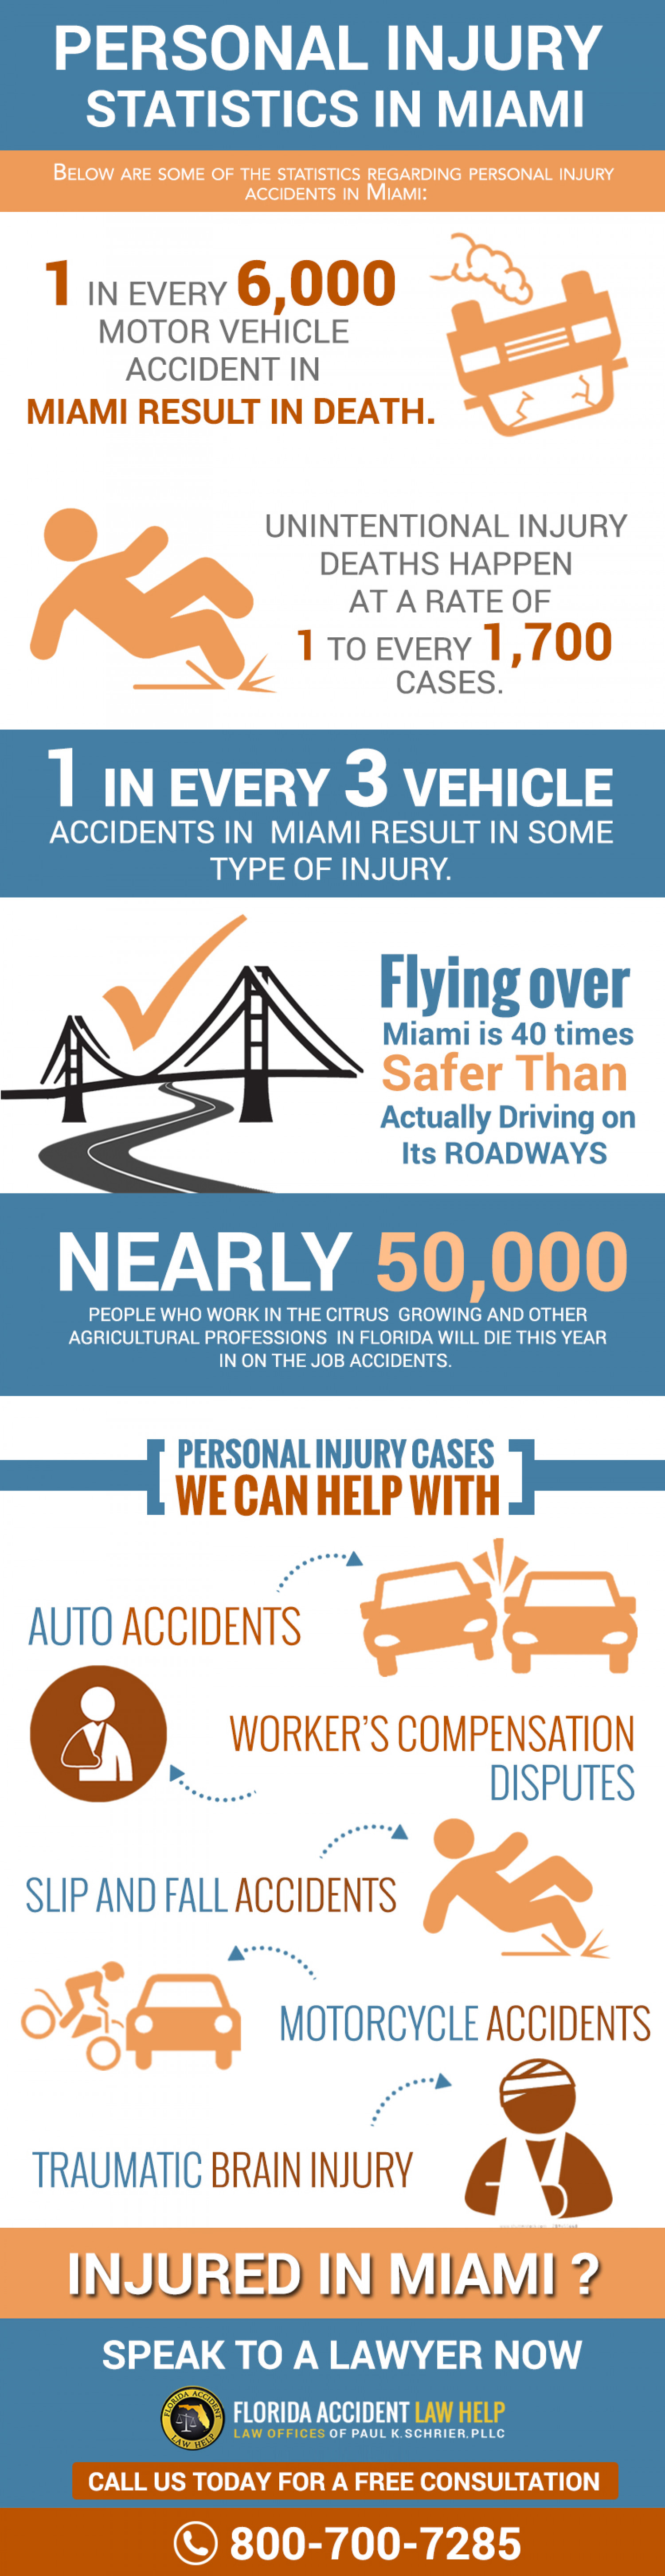 Statistics About Personal Injury and Car Accidents in Miami Infographic